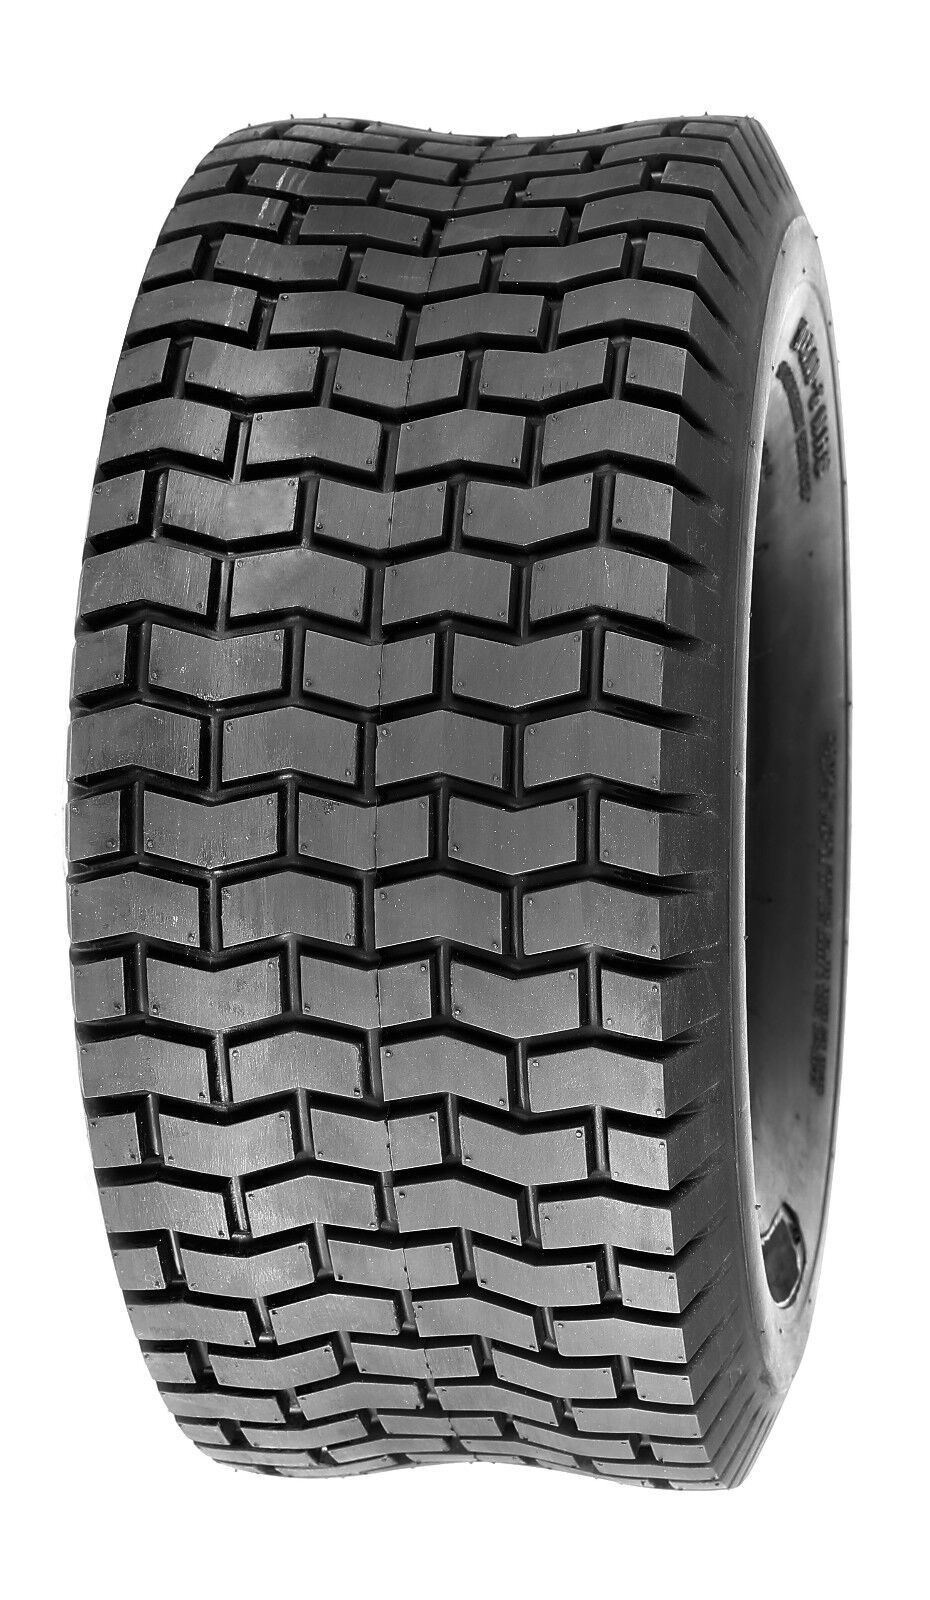 Deli Tire 15x6.00-6, Turf Tire, 4 Ply Rating, Tubeless, Lawn